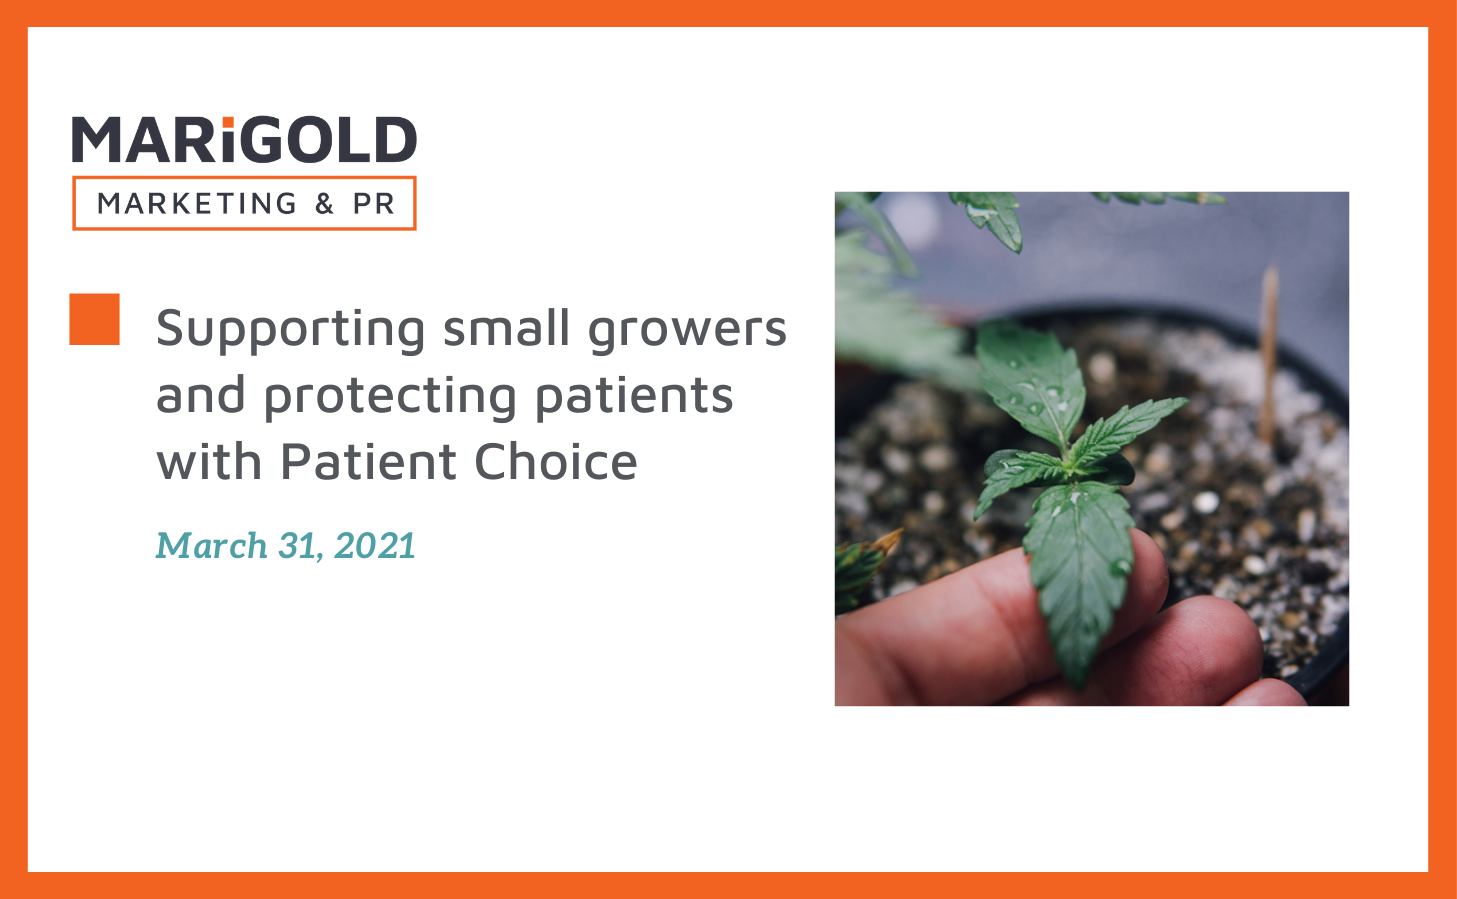 supporting growers and protecting patients with patient choice